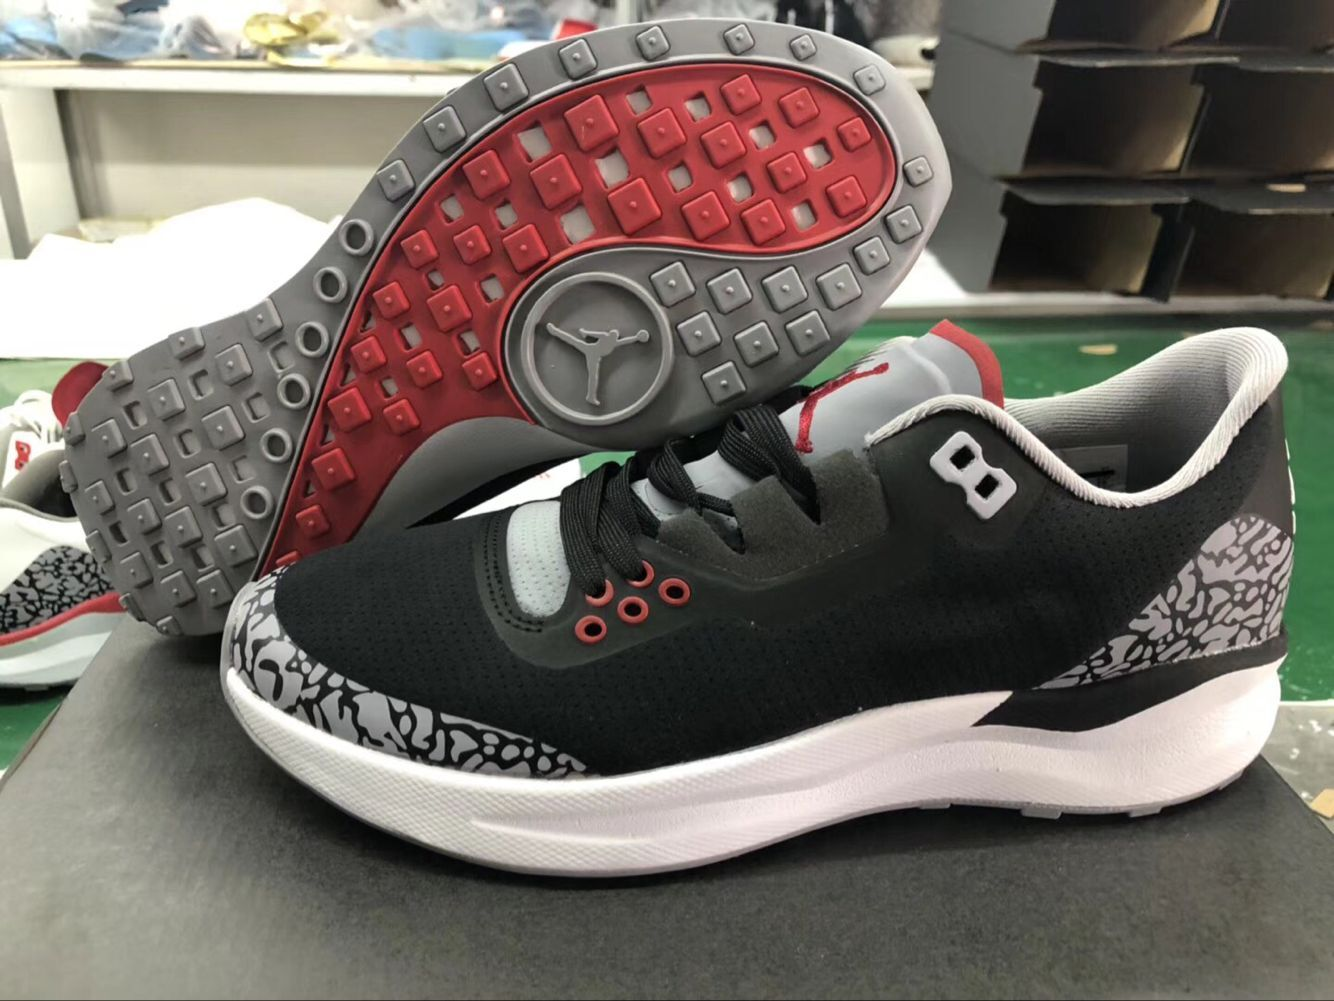 New Jordan 3 Retro Running Shoes Black Cement Grey Red